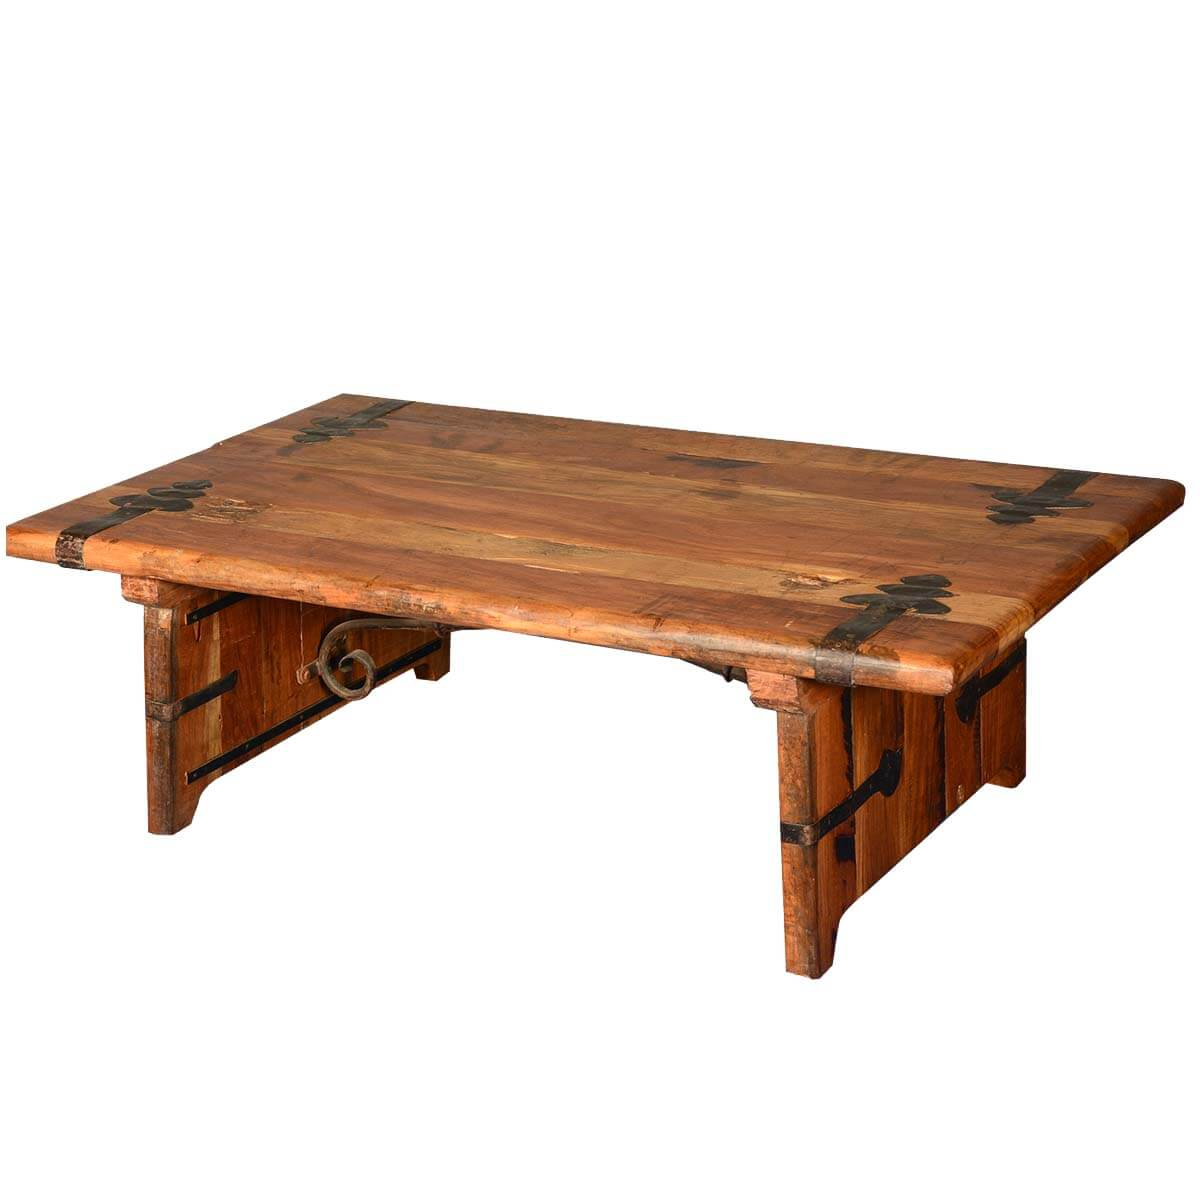 Rustic reclaimed wood wrought iron hastings coffee table Rustic wooden coffee tables